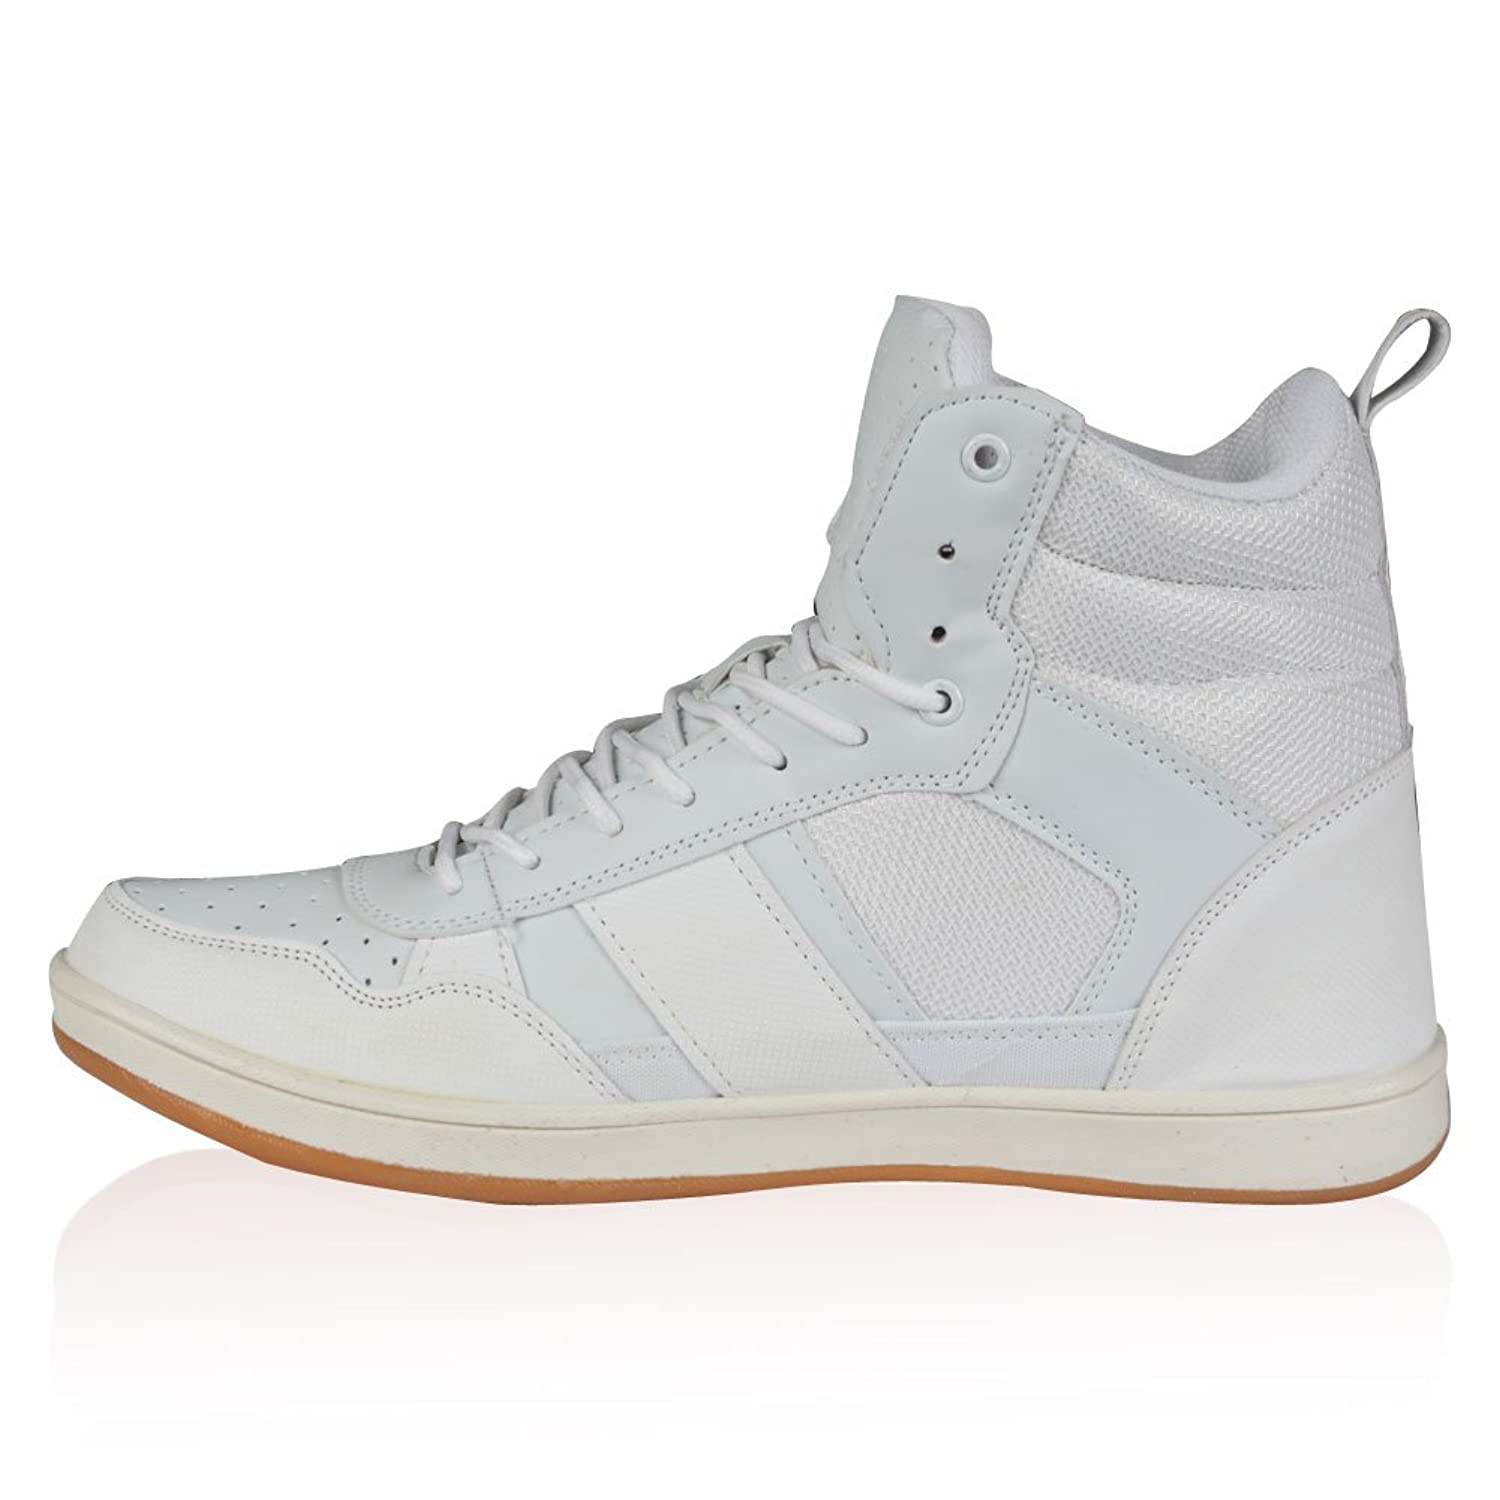 Rawcraft Cabril Mens Designer Trainer Boots  White UK11 Amazoncouk  Shoes  Bags